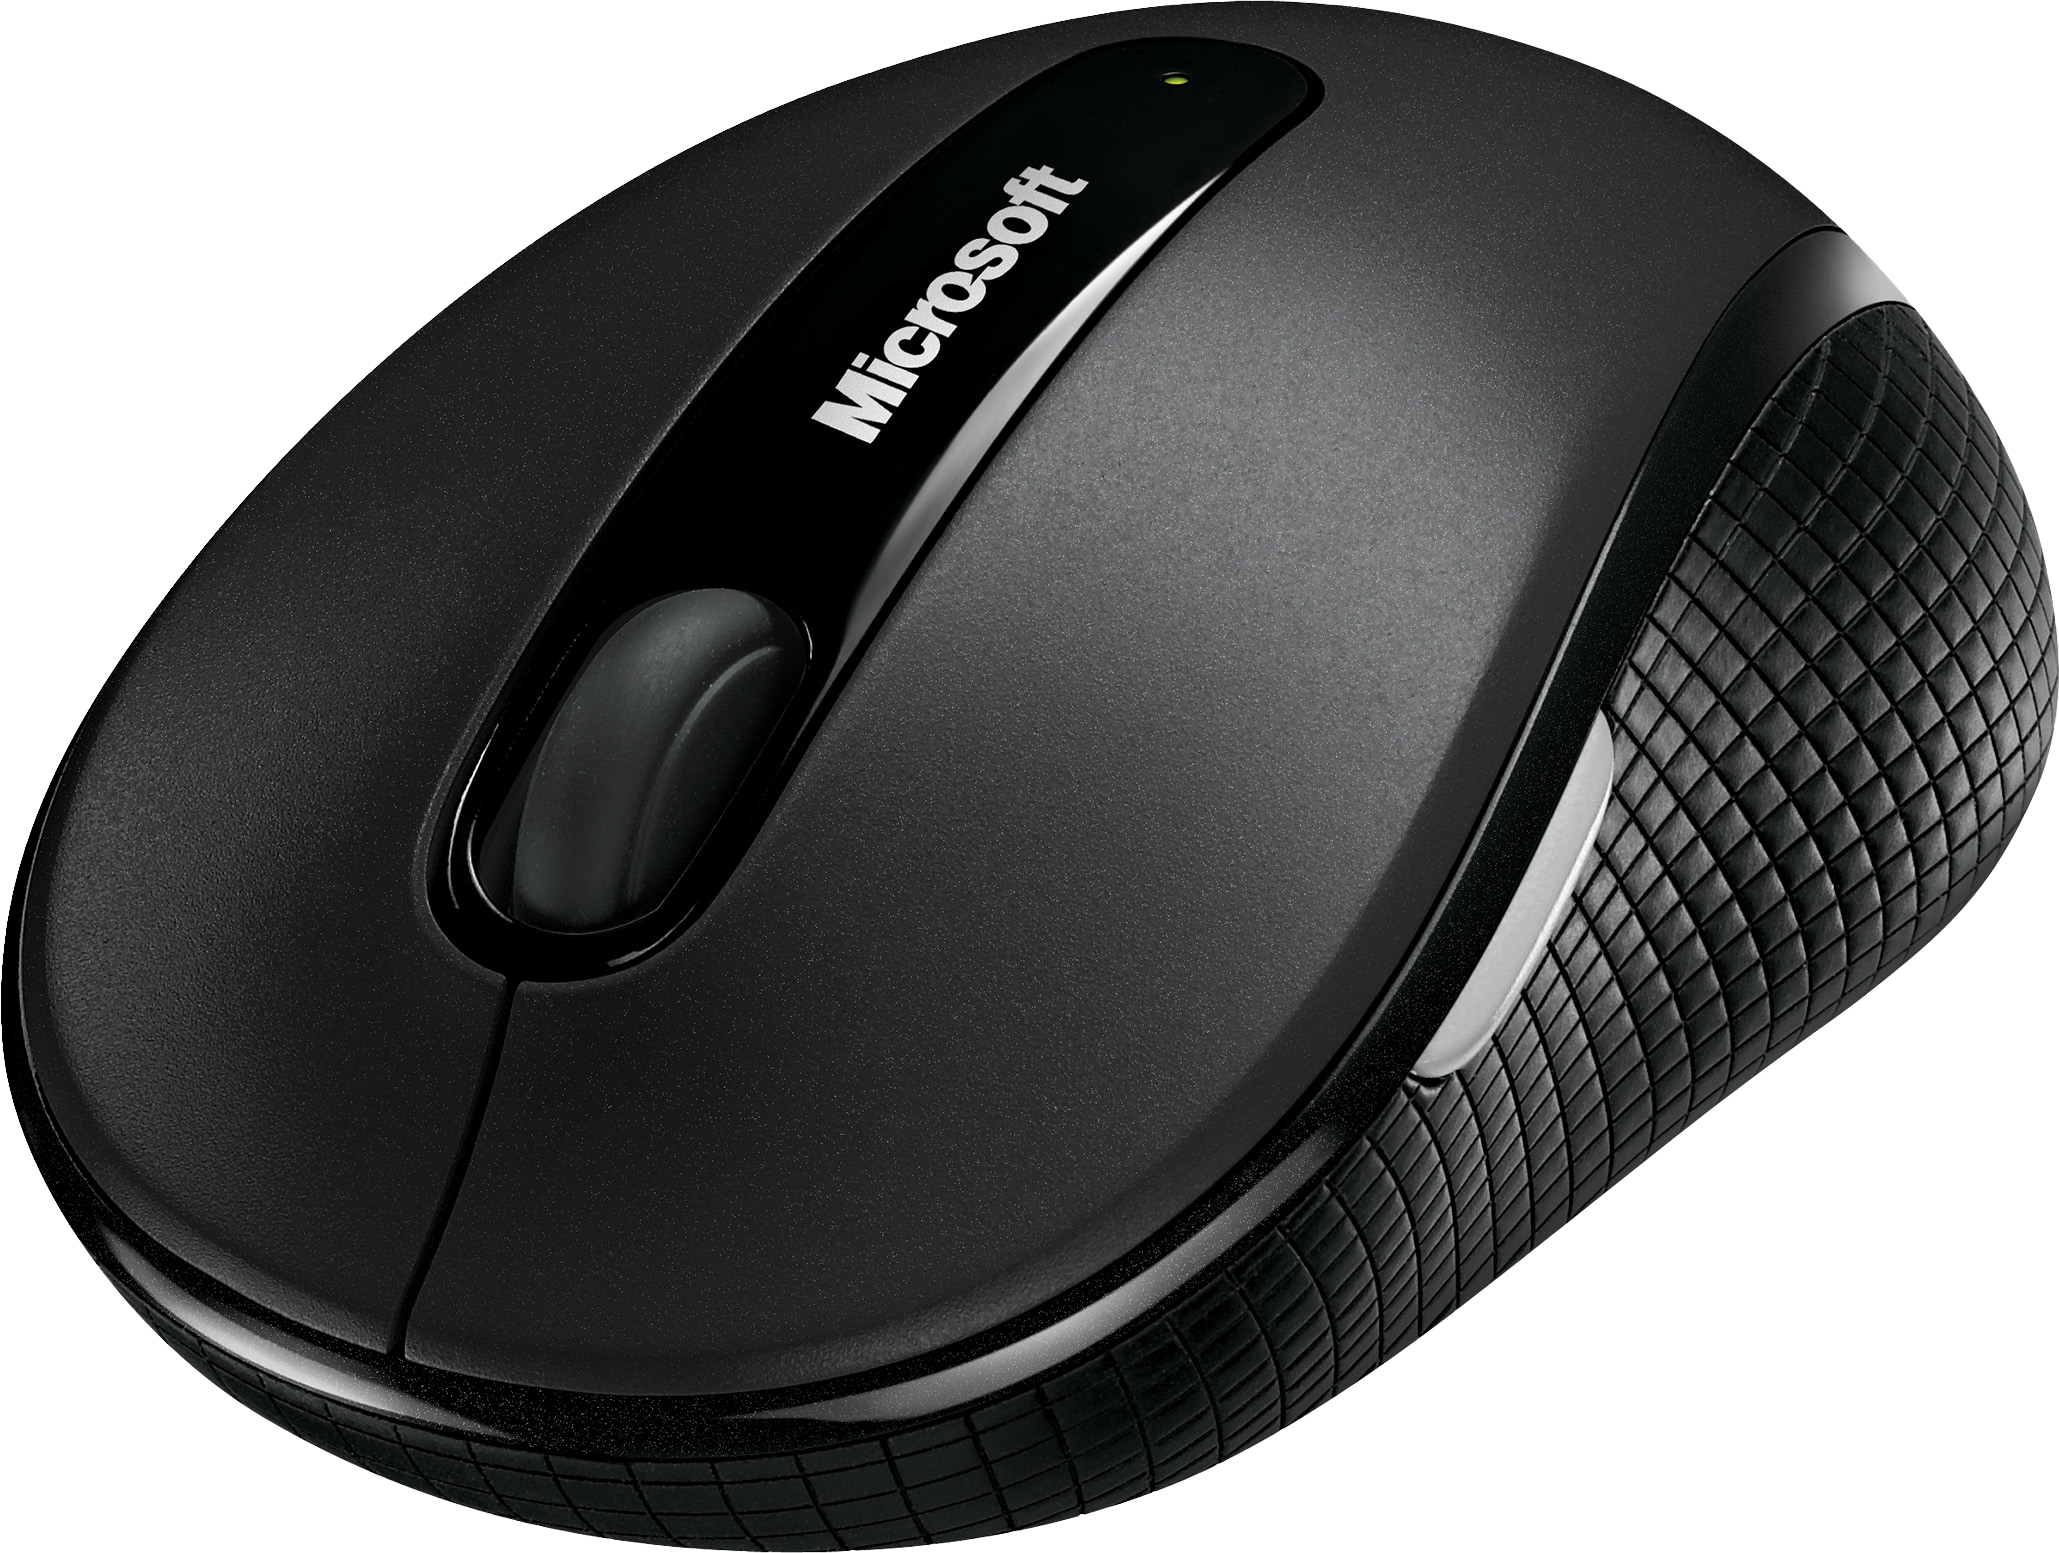 Wireless Mobile Mouse 4000, graphite, angled view